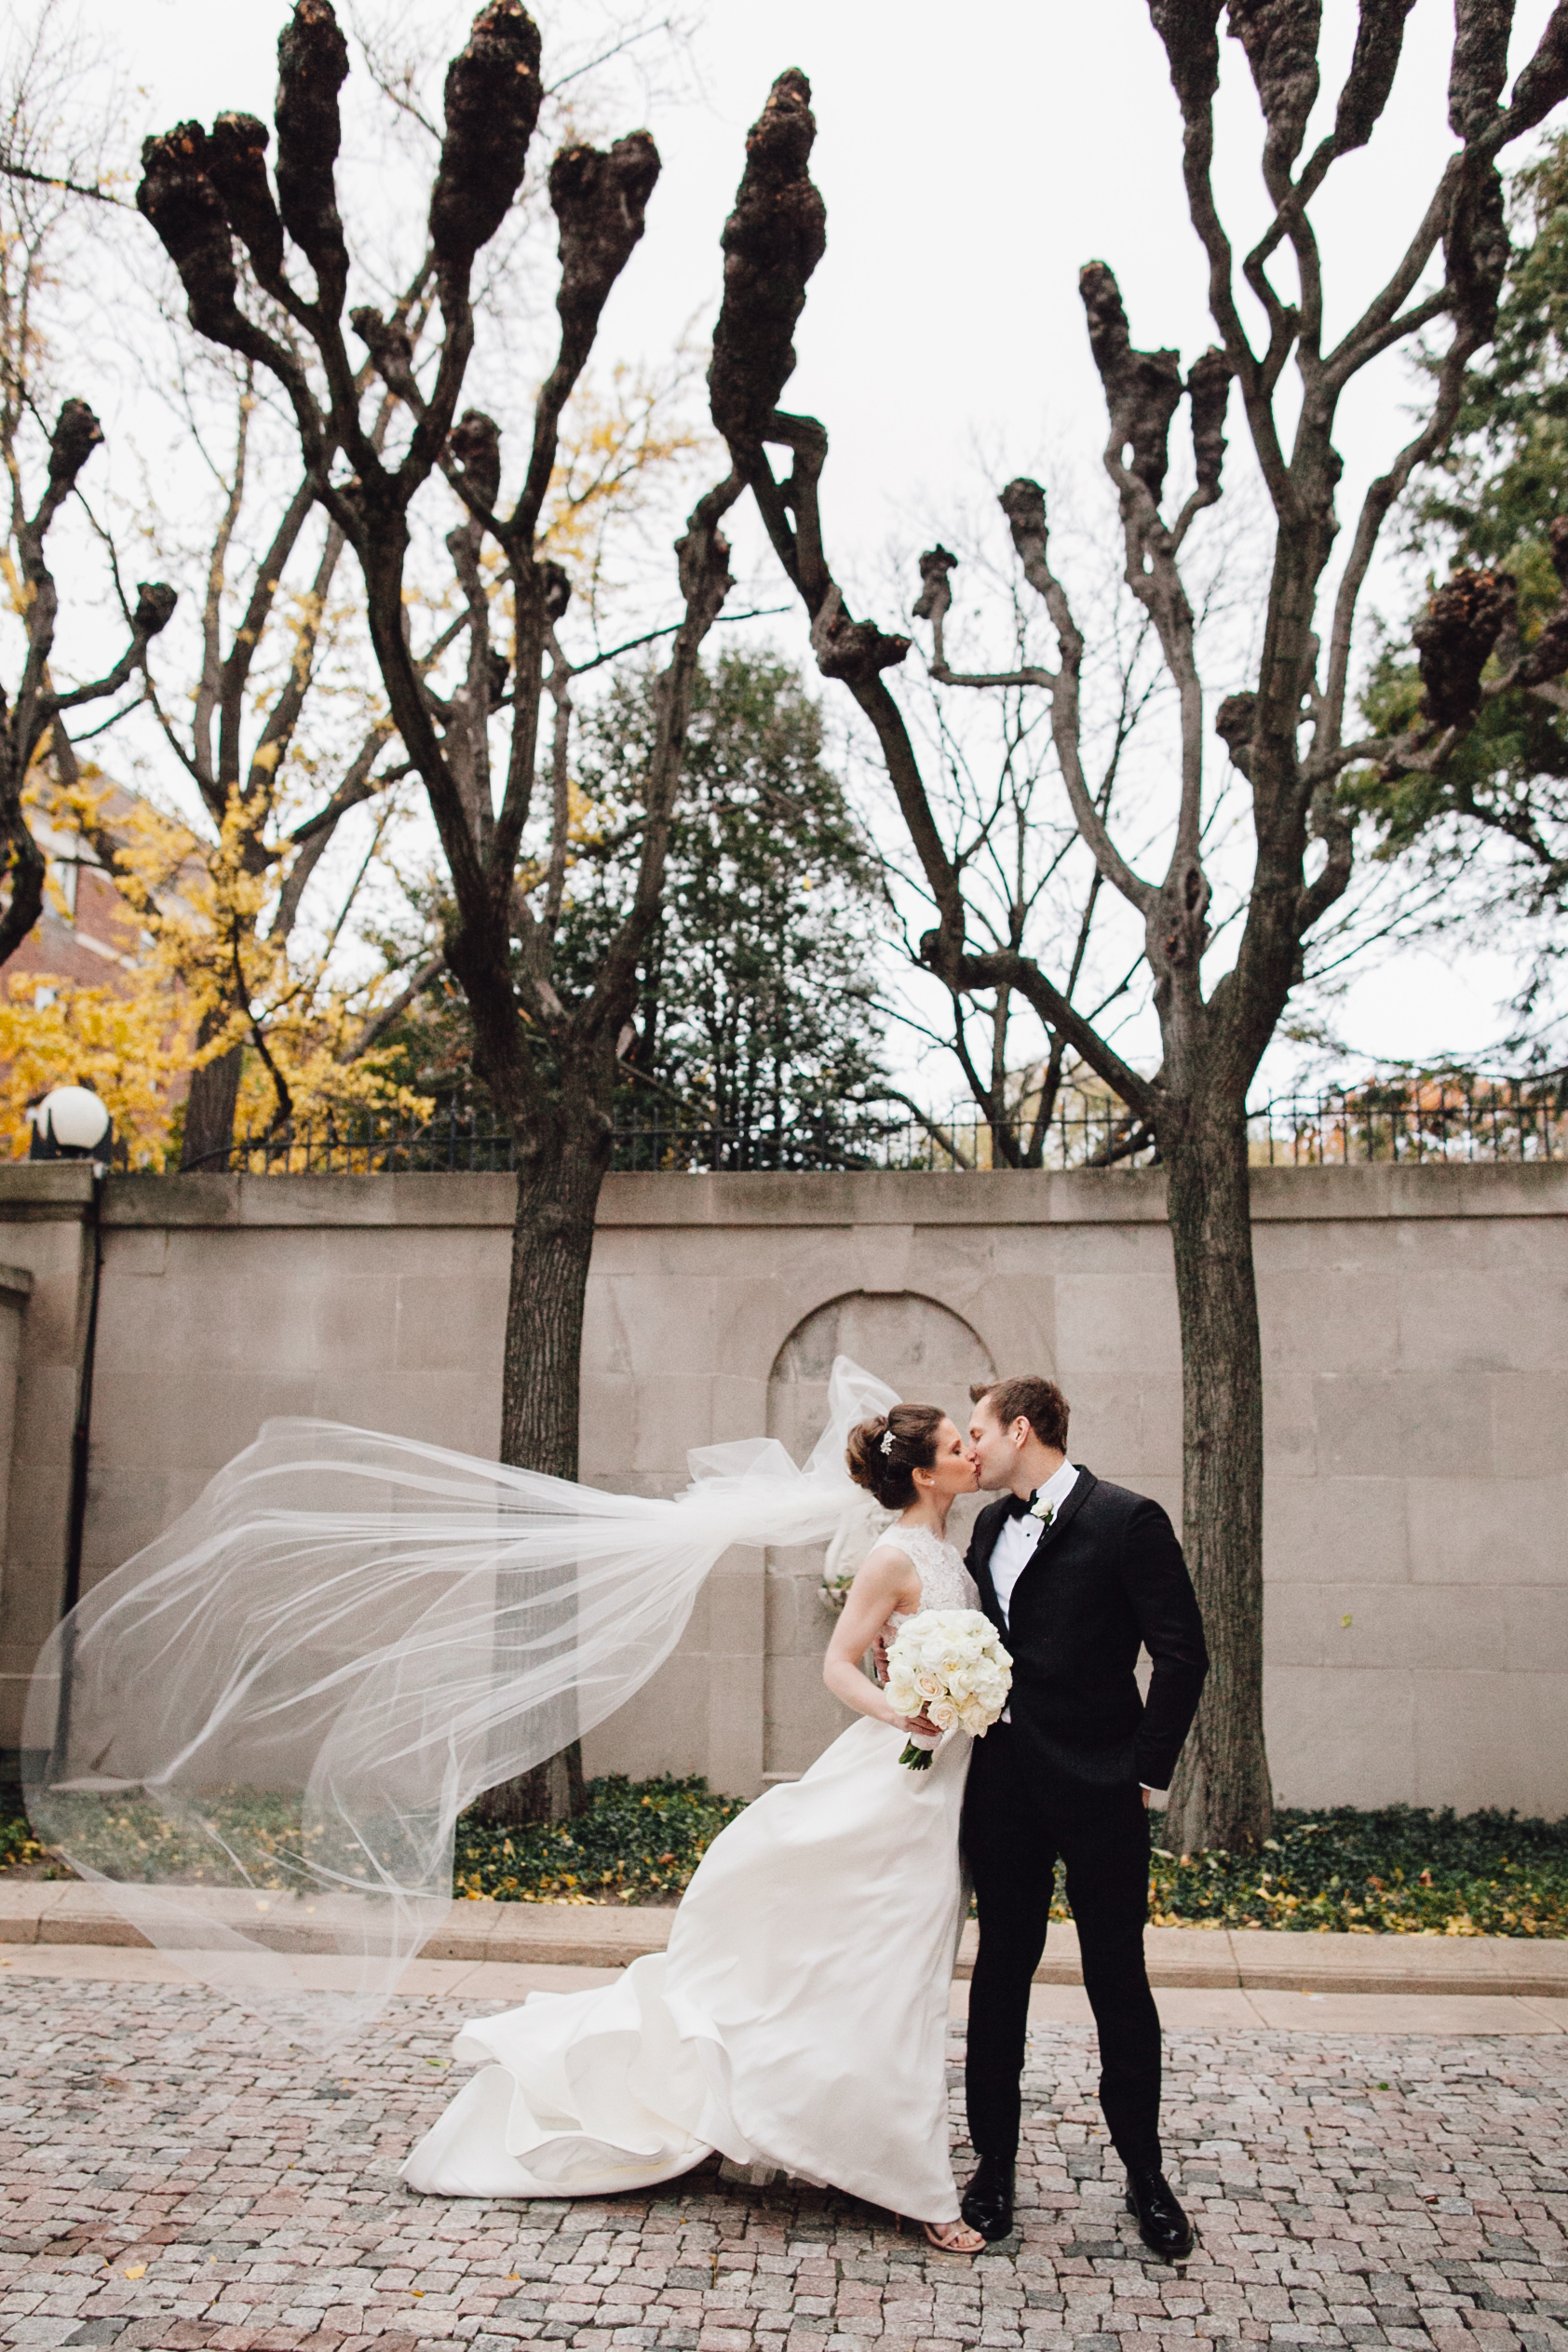 Windy portrait of the bride and groom at Meridian House in DC - Maria Vicencio Photography Weddings